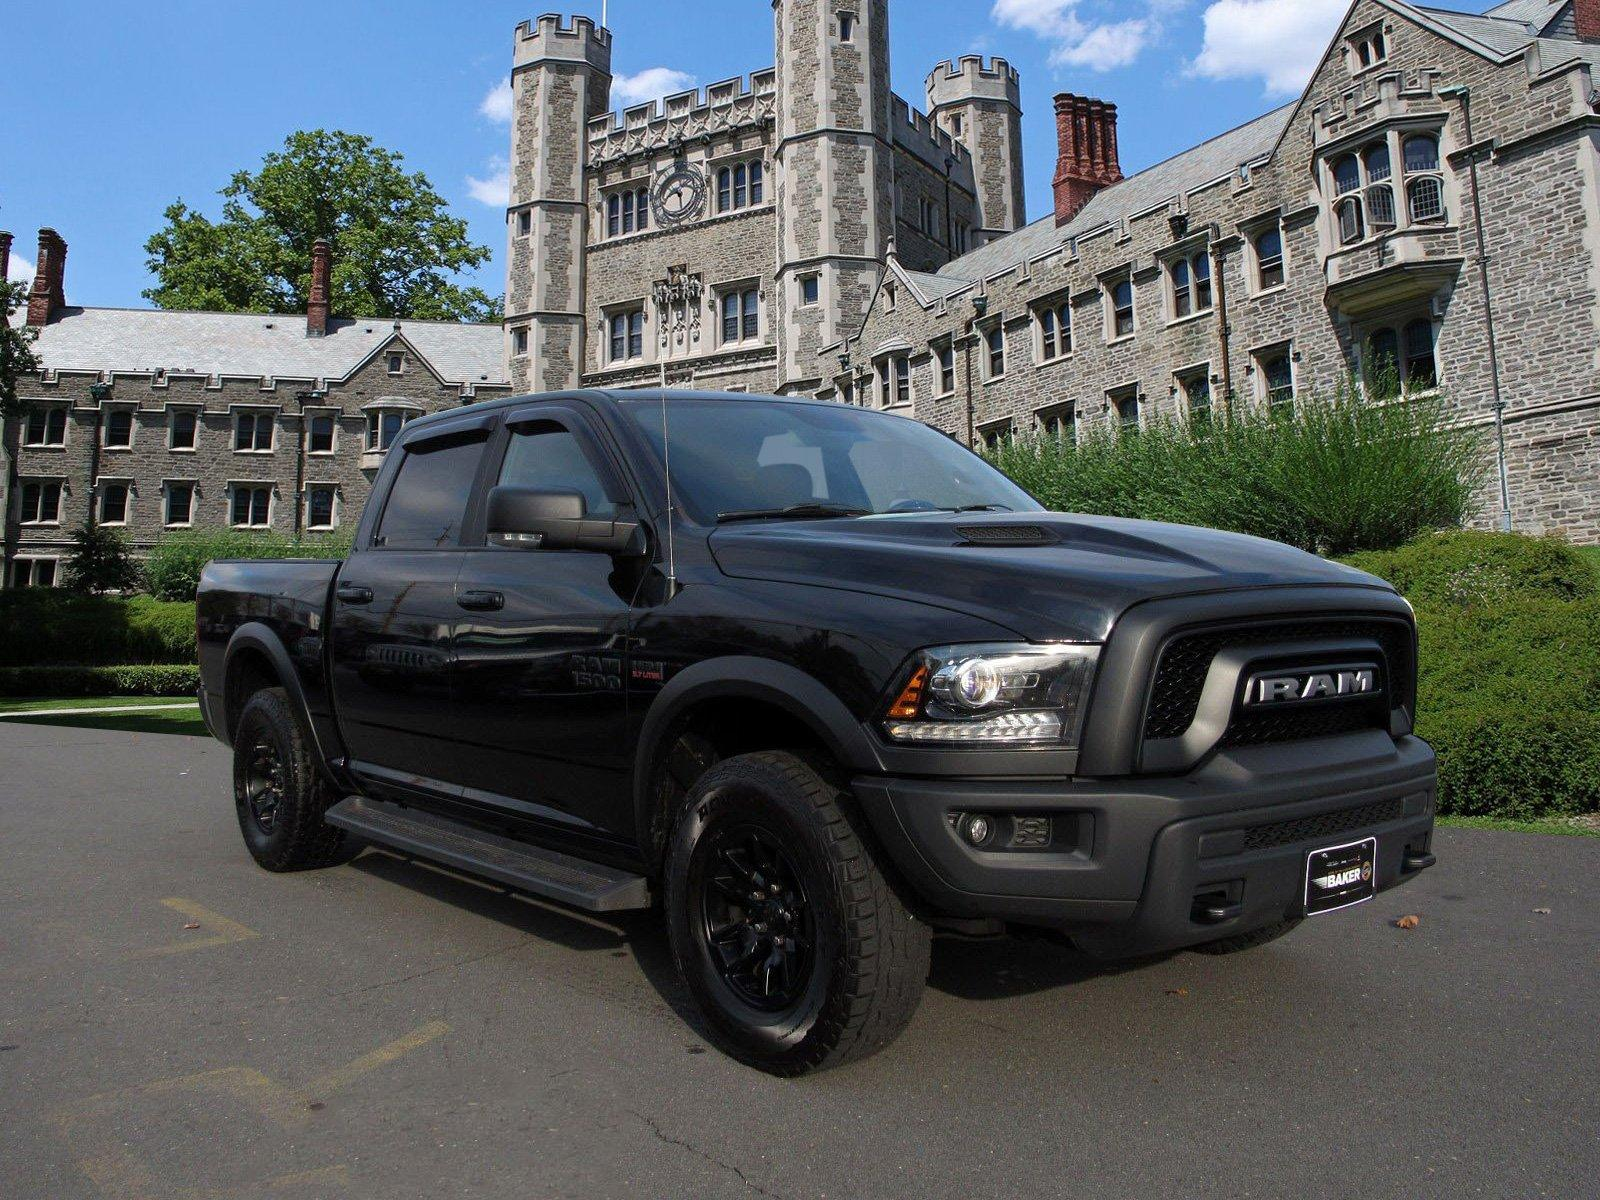 Used 2018 Ram 1500 Rebel for sale Sold at Victory Lotus in Princeton NJ 08540 1